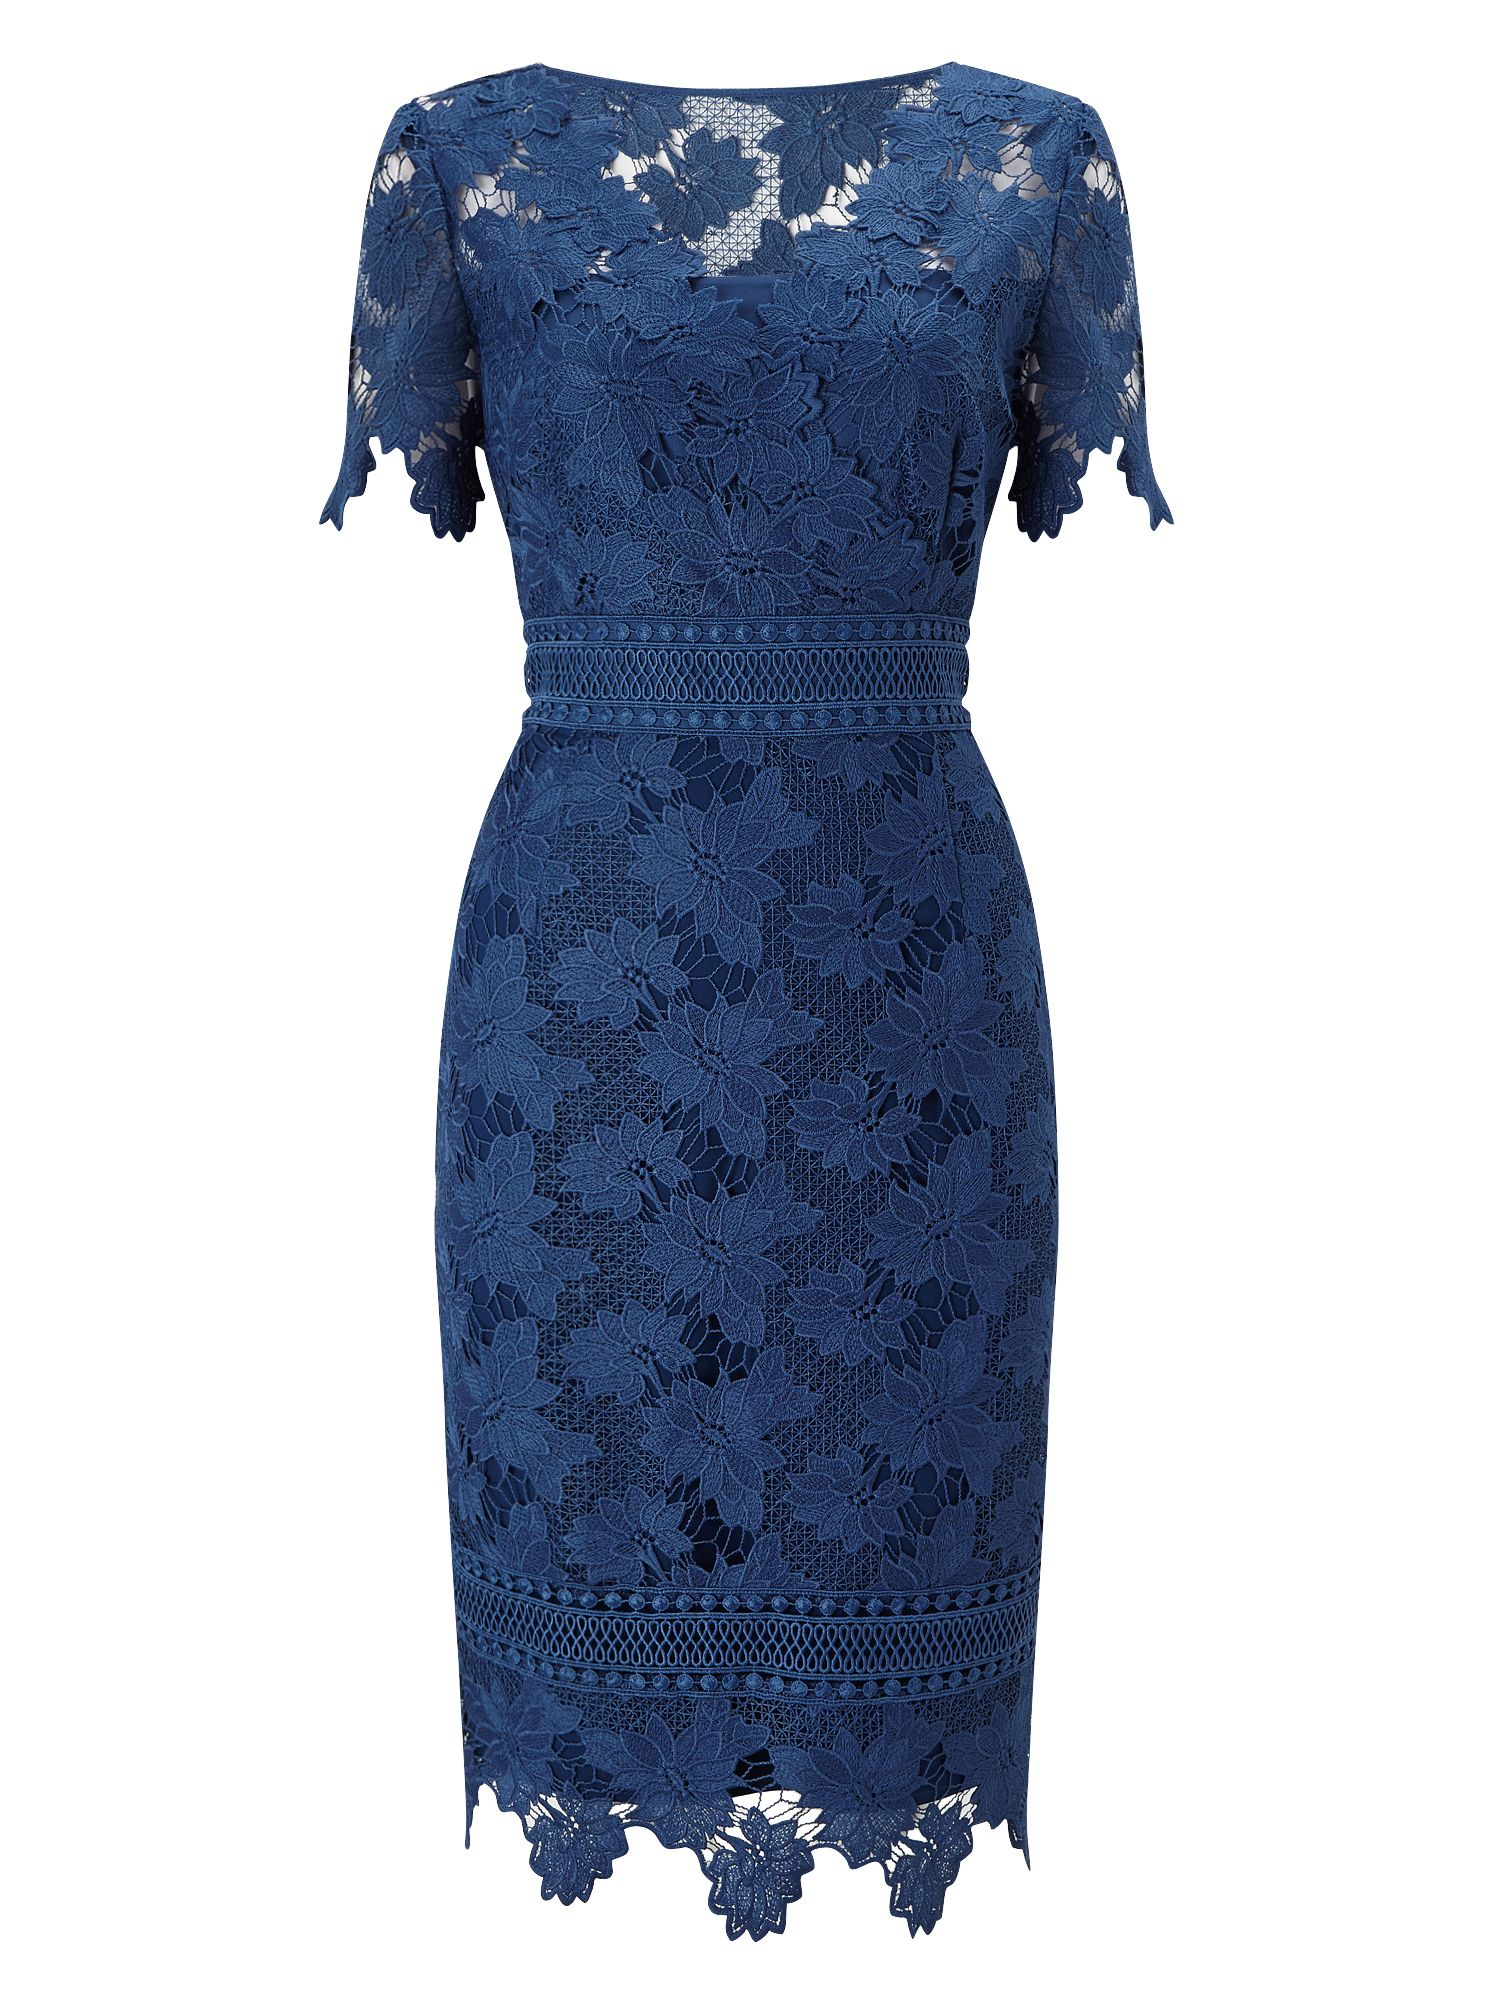 Jacques Vert Lace Dress, Blue